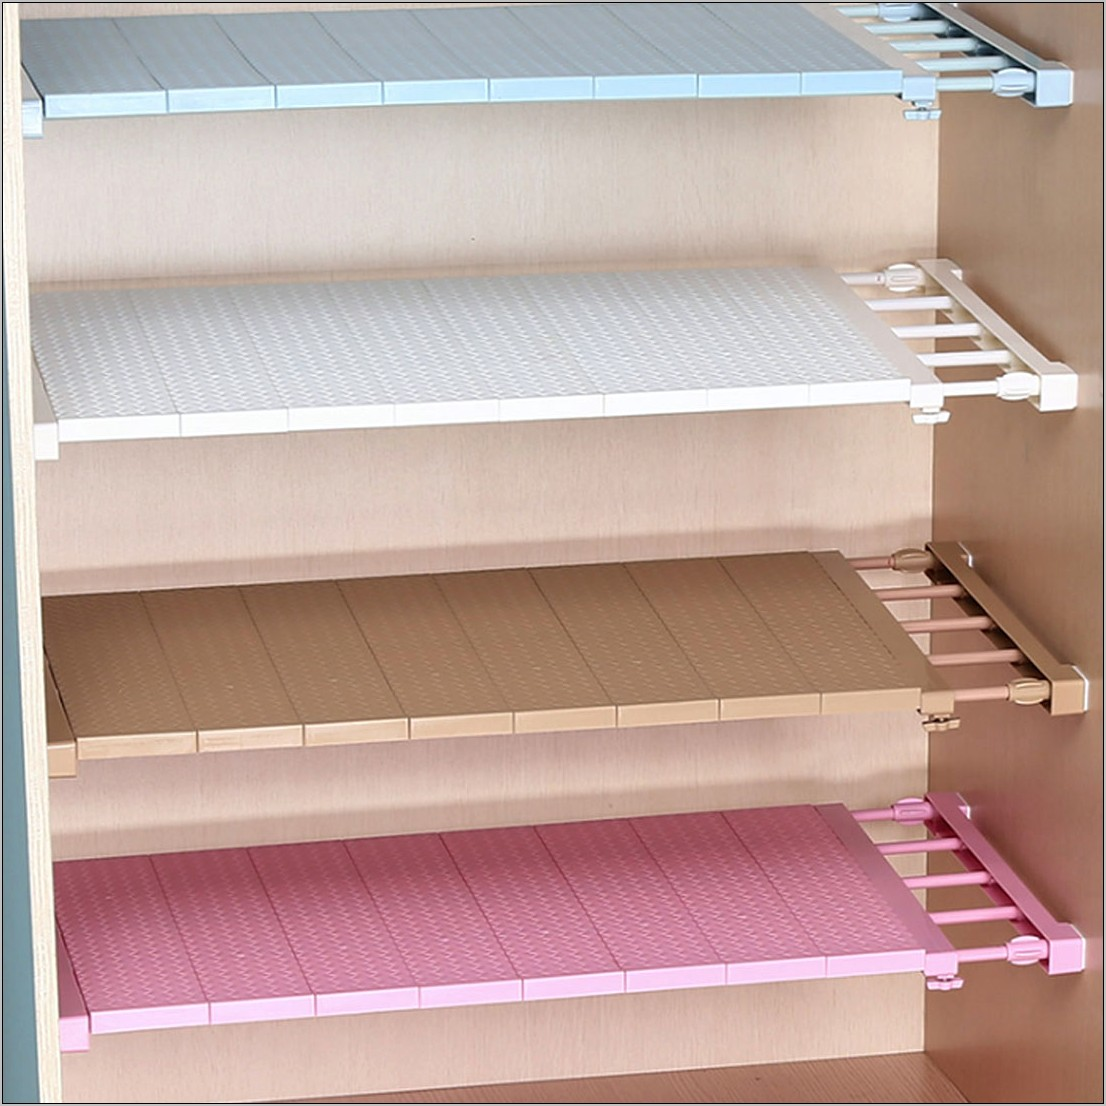 Decorative Shelving For The Kitchen